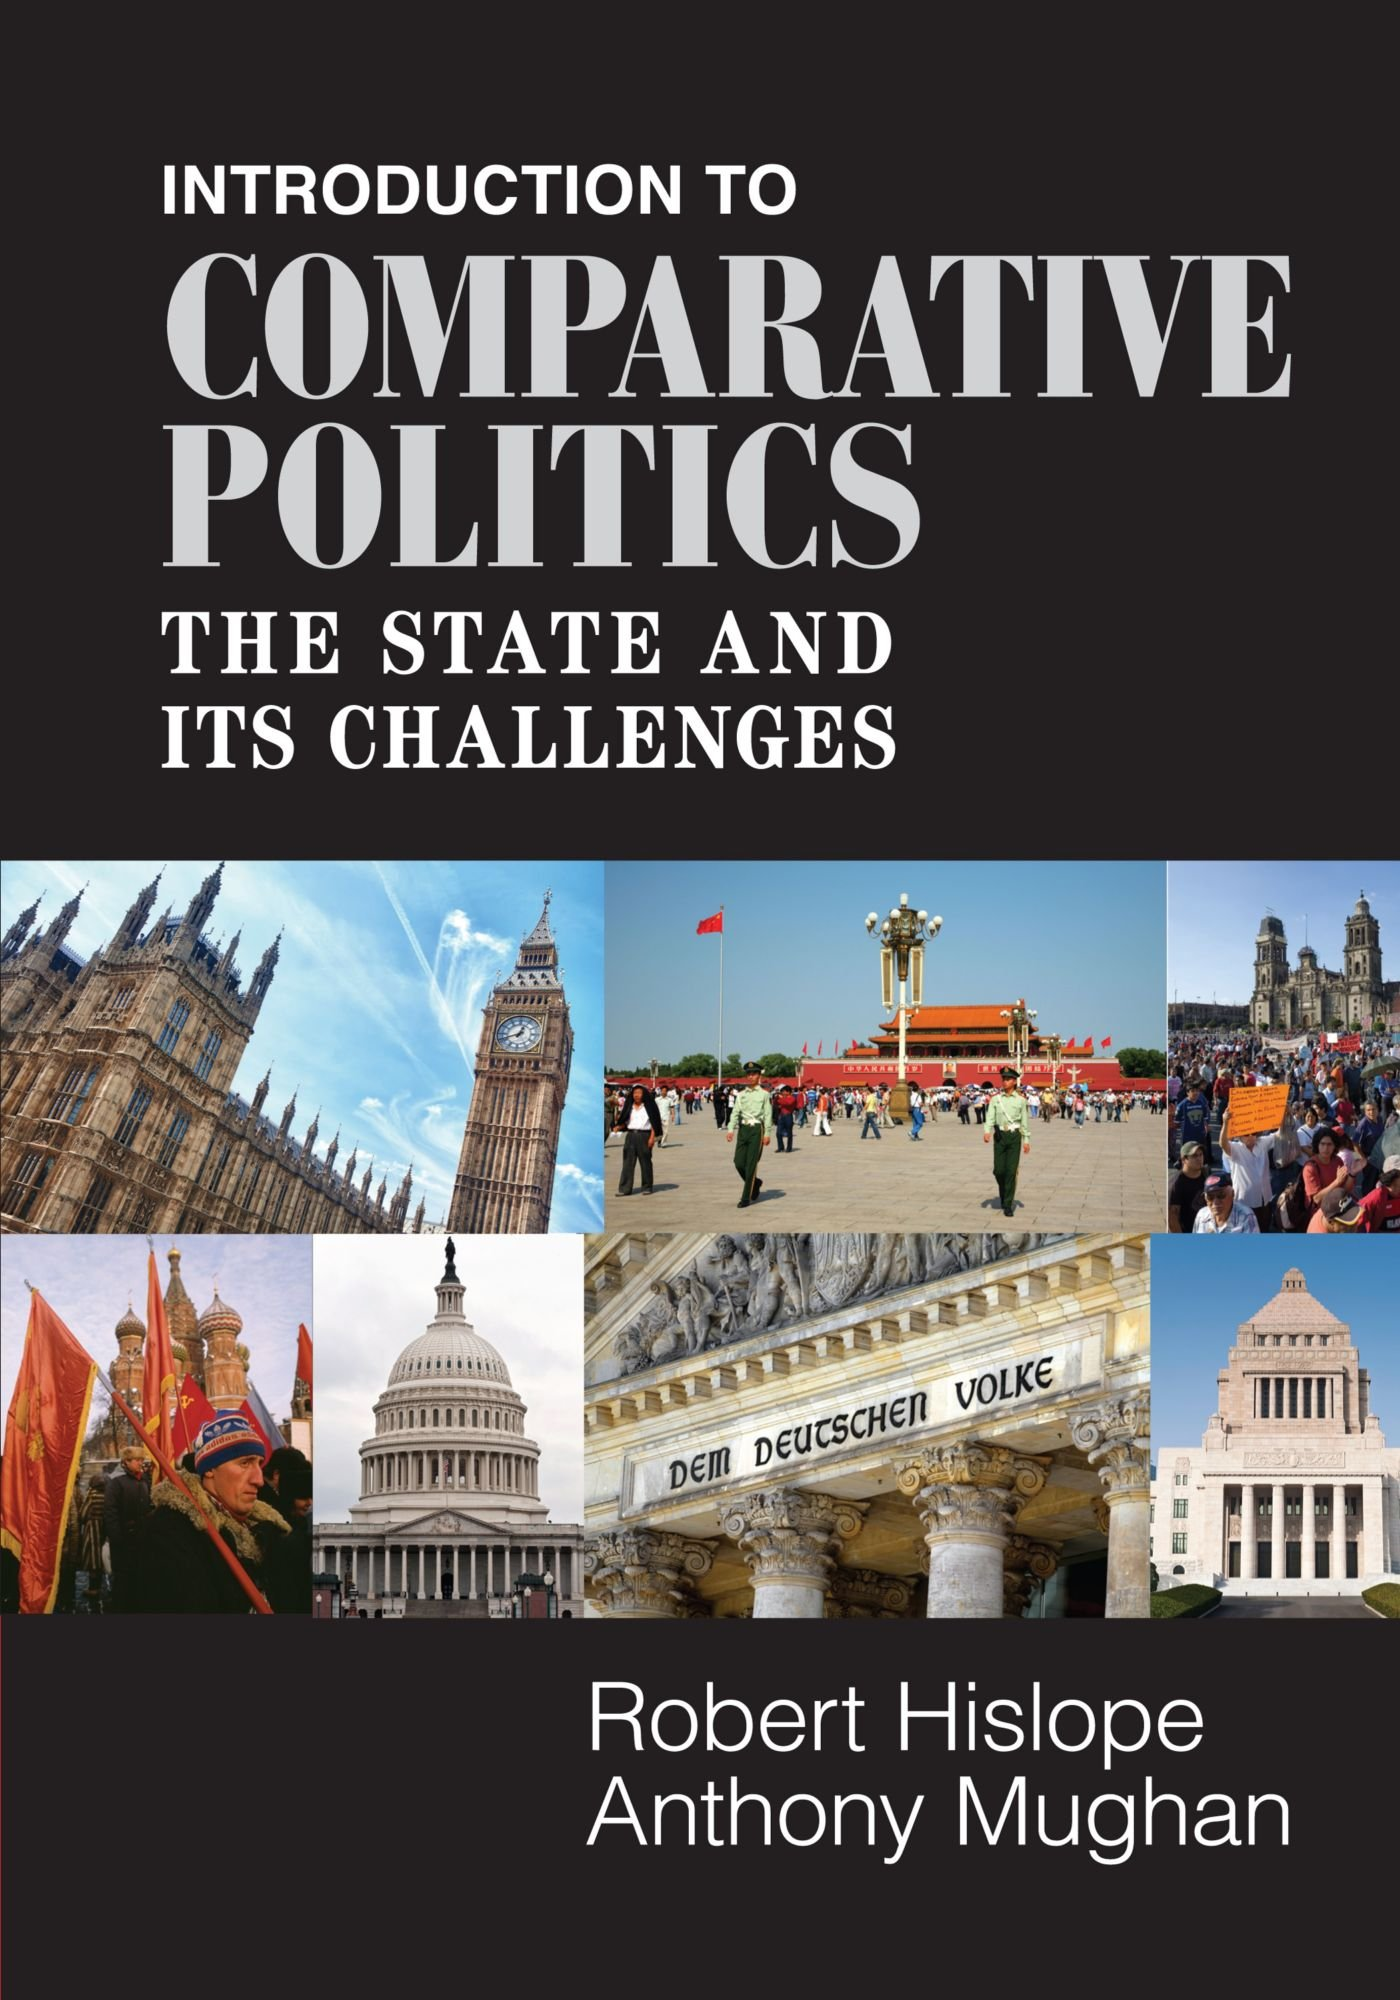 Introduction to Comparative Politics: The State and its Challenges: Robert  Hislope: 9780521758383: Amazon.com: Books